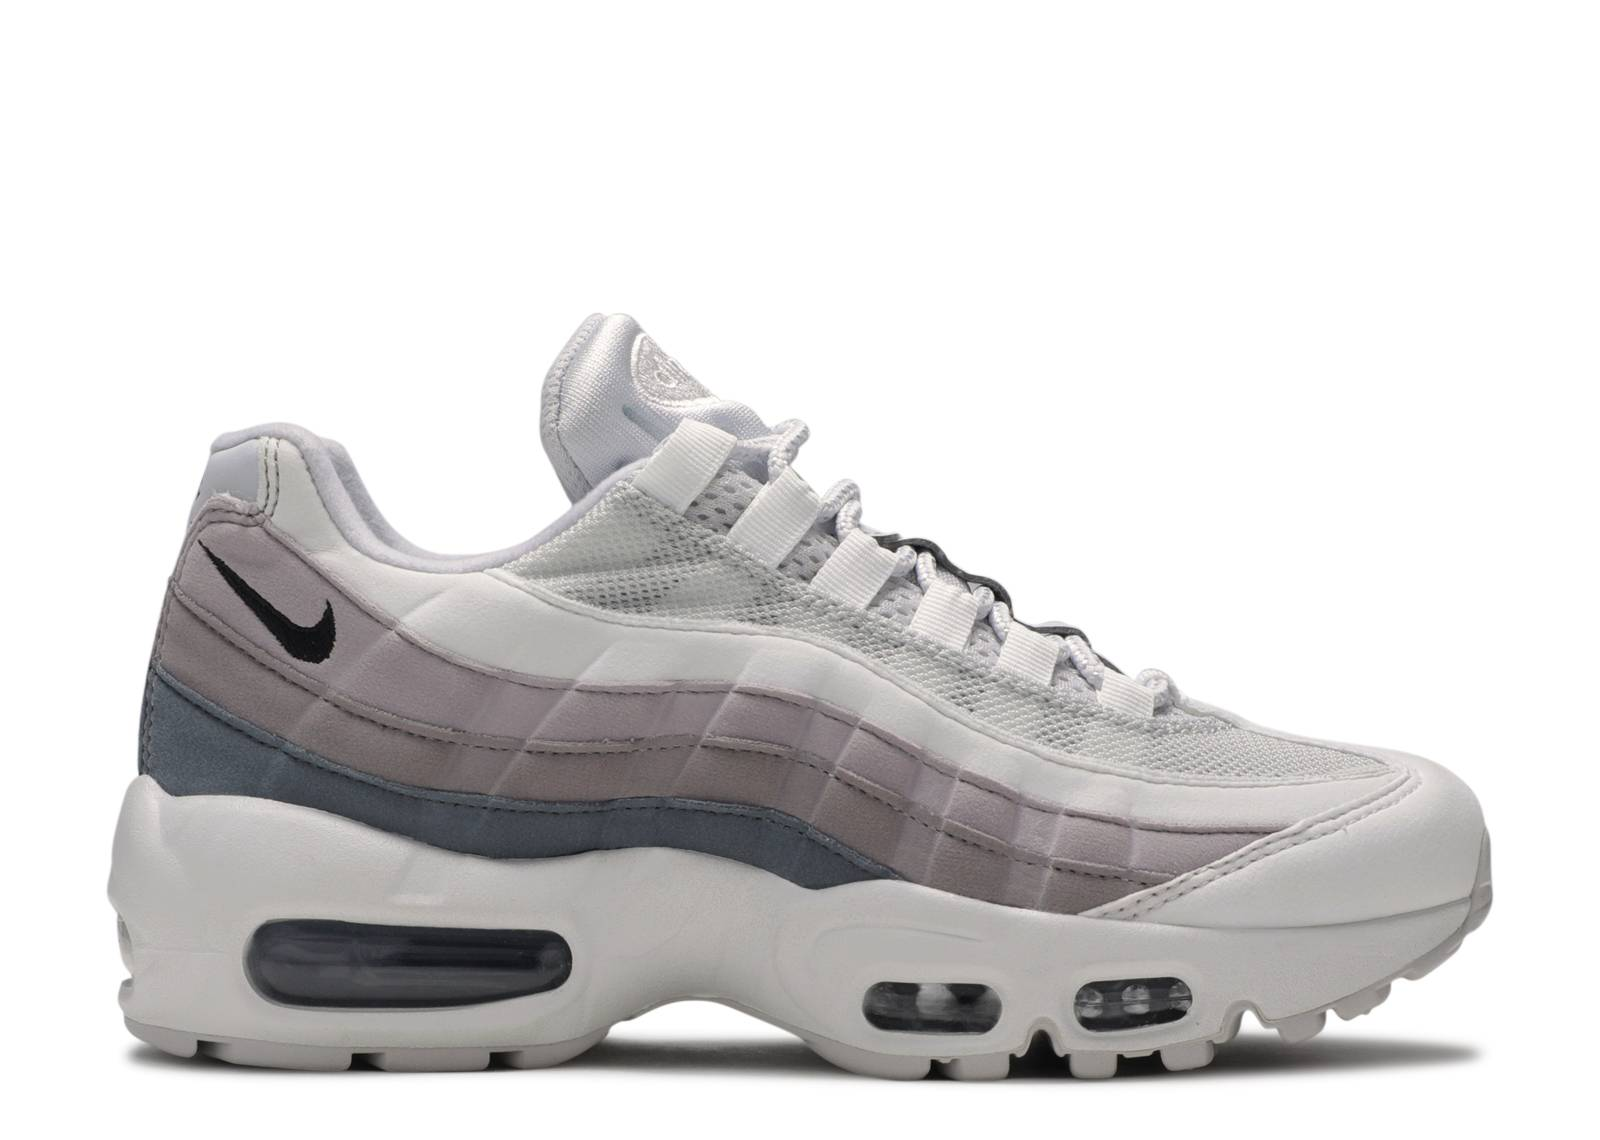 Wmns Air Max 95 'Vast Grey'